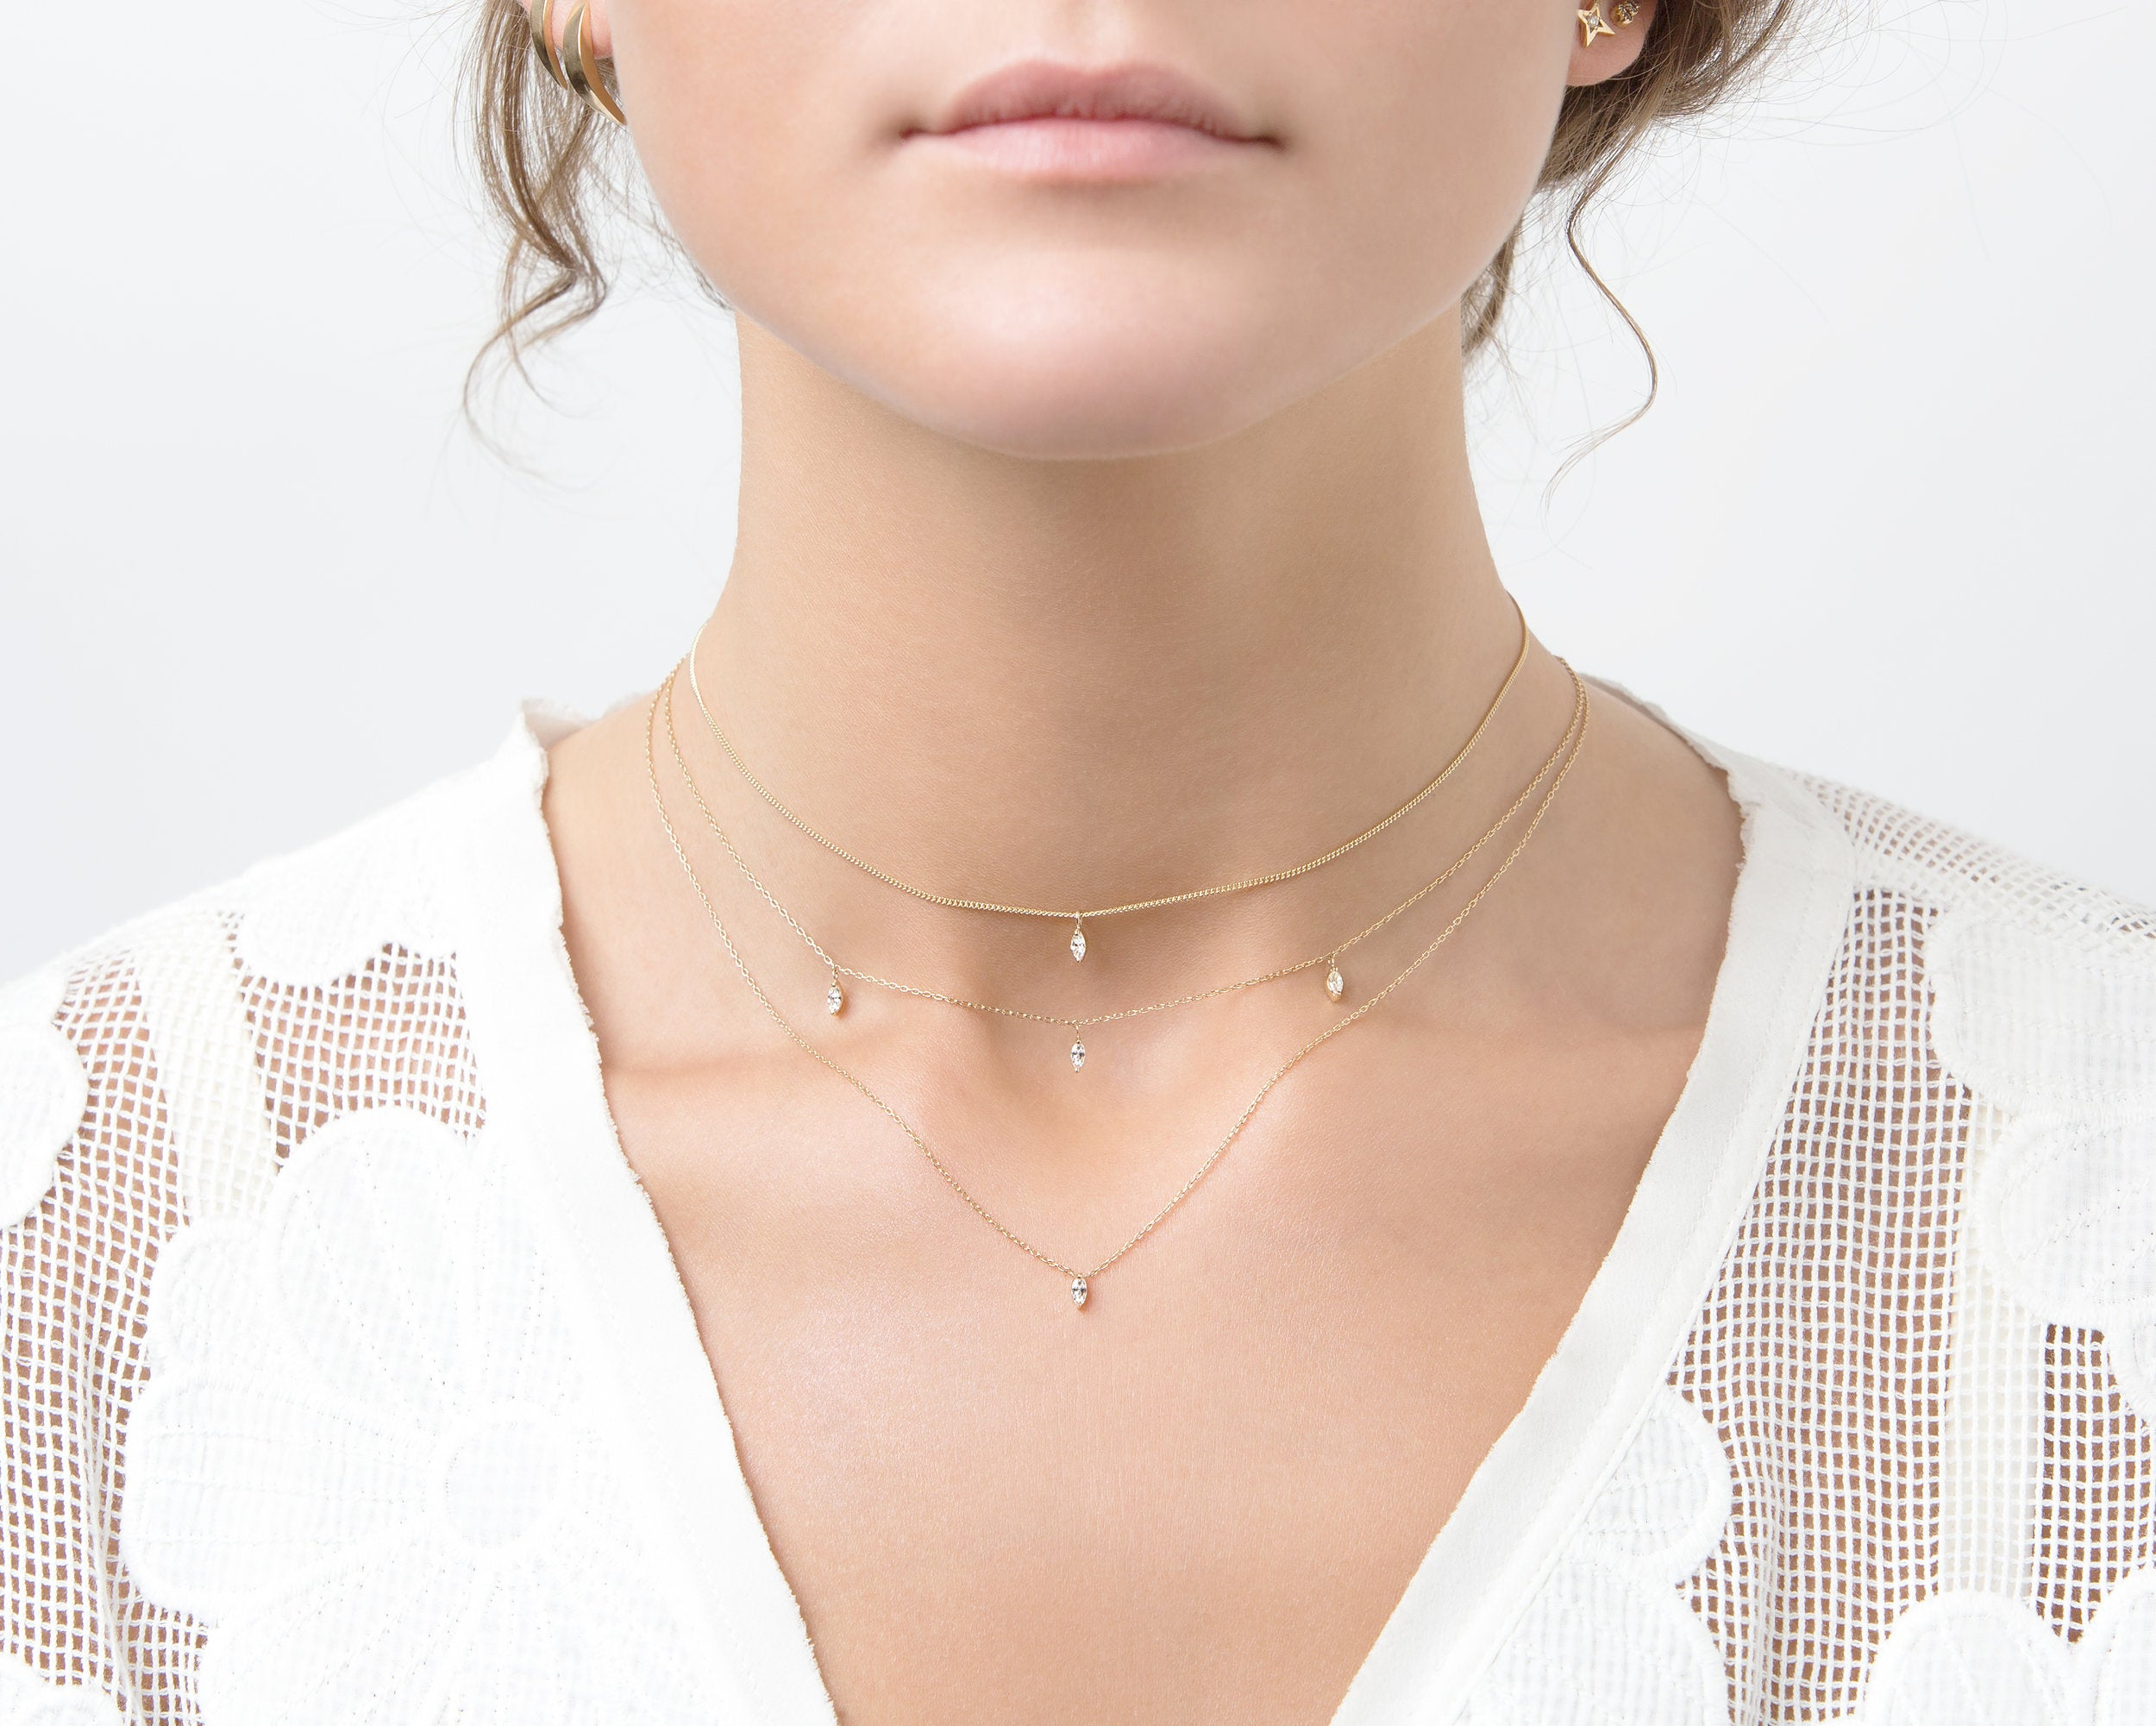 everett fine jewelry custom necklaces lookbook